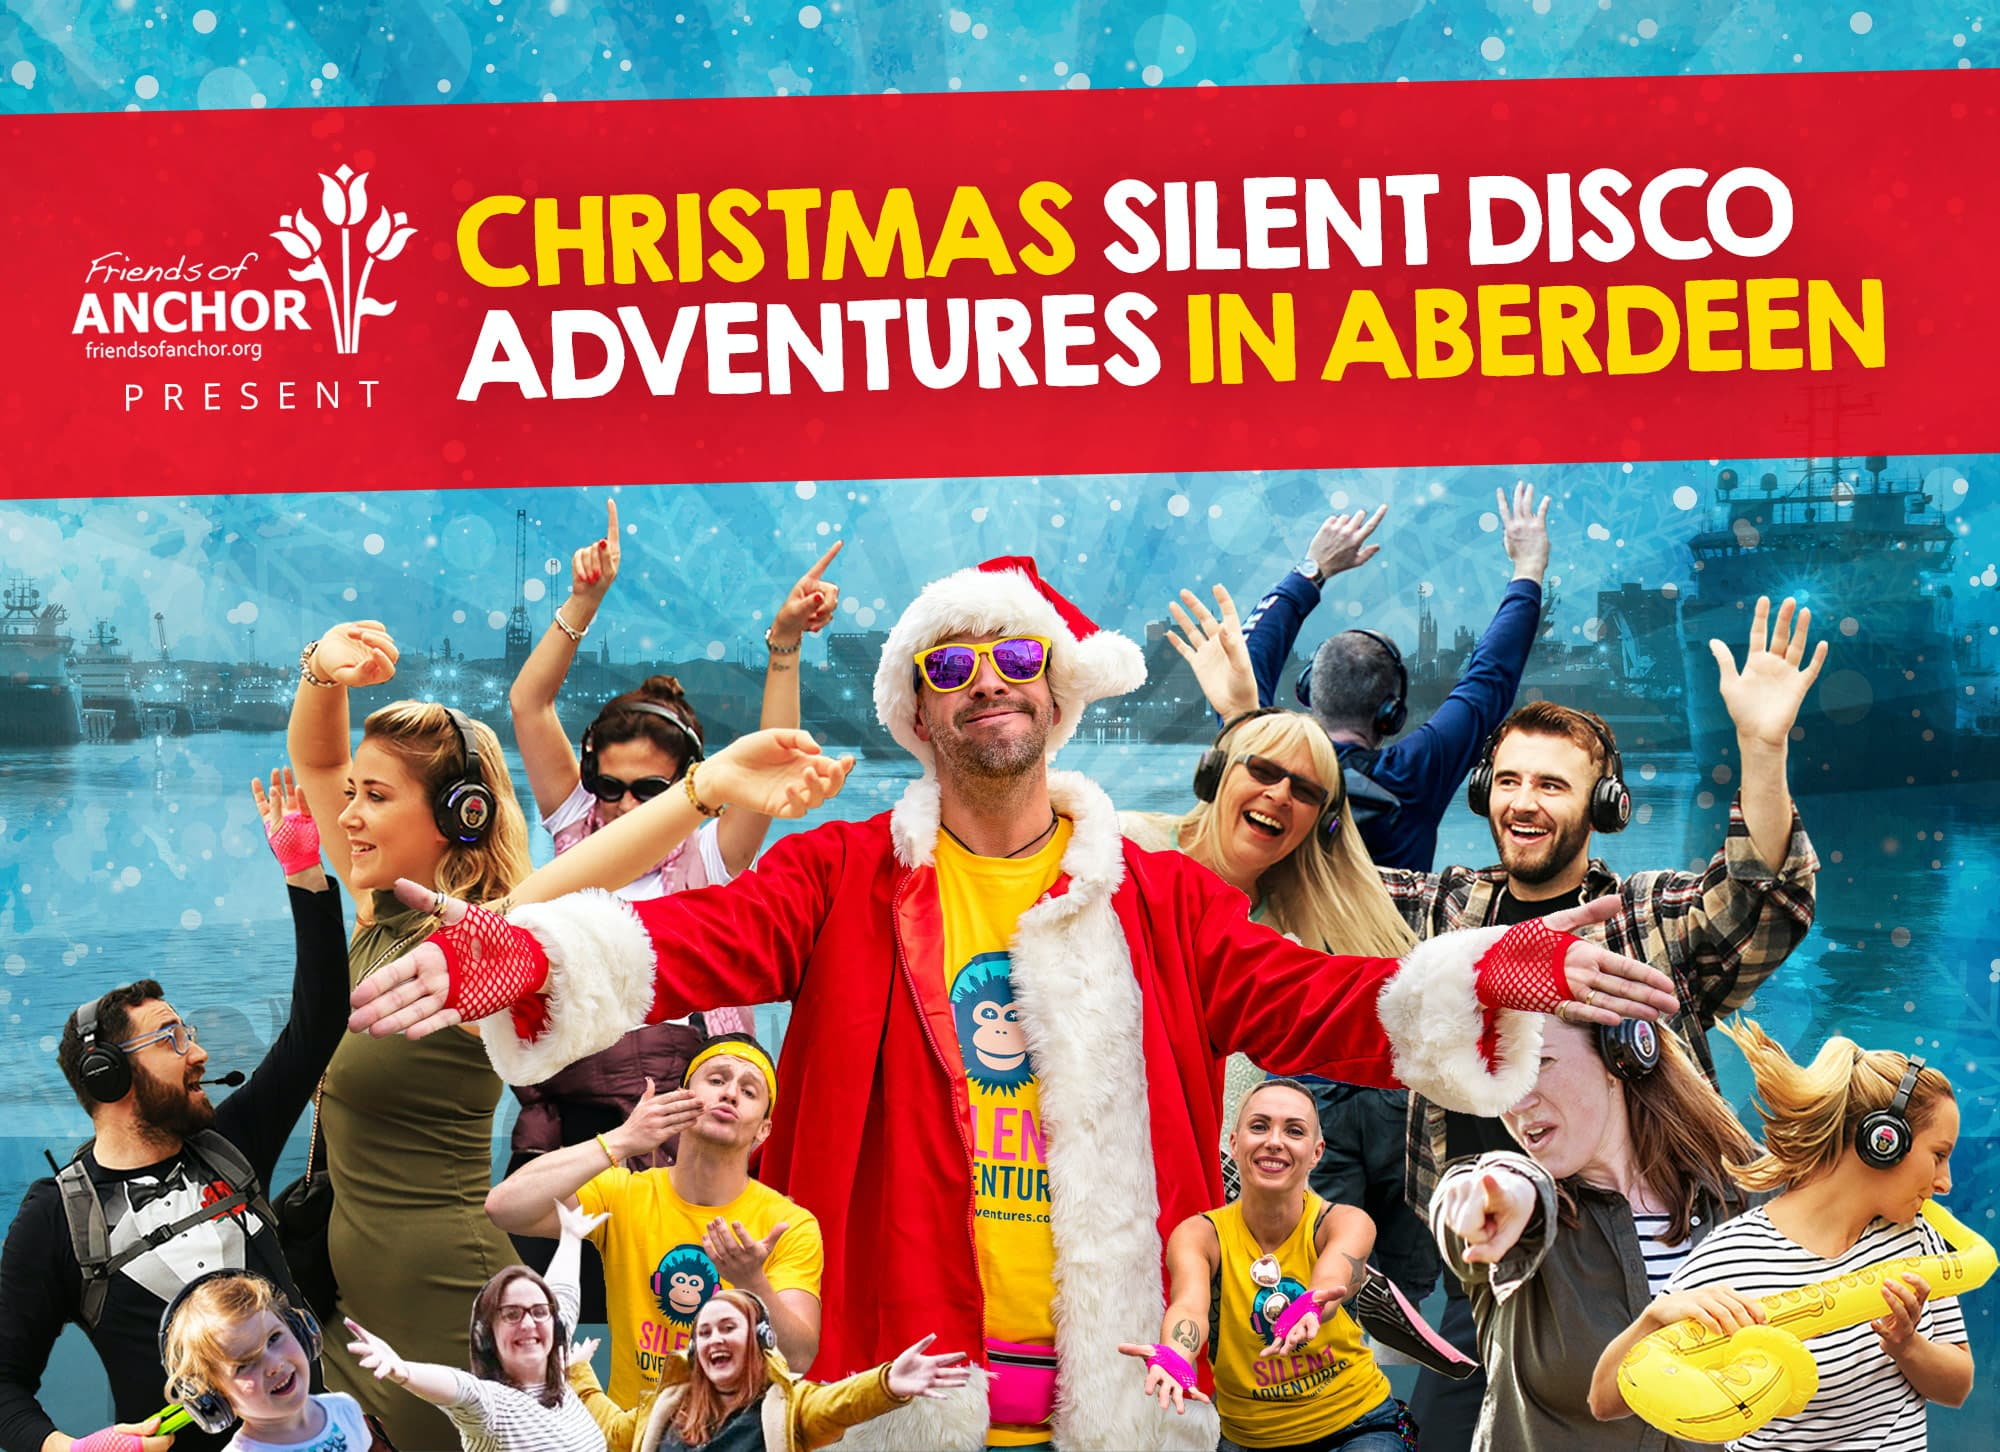 Aberdeen Christmas silent Disco Adventures